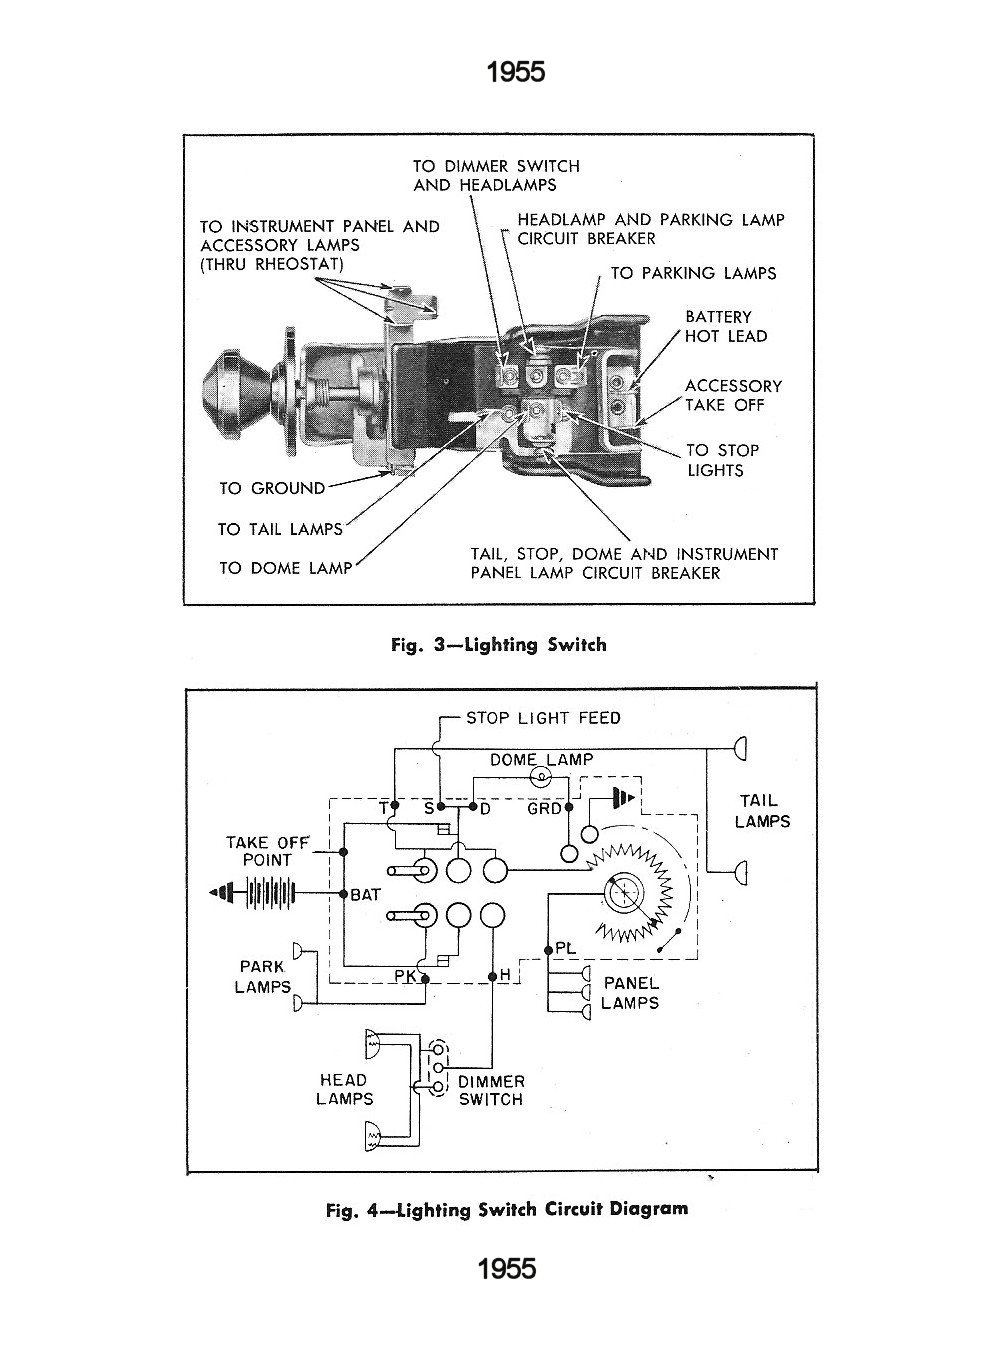 wiring diagram for headlight dimmer switch lighting junction box 57 chevy schematic diagrams harness 1955 u0026 circuit